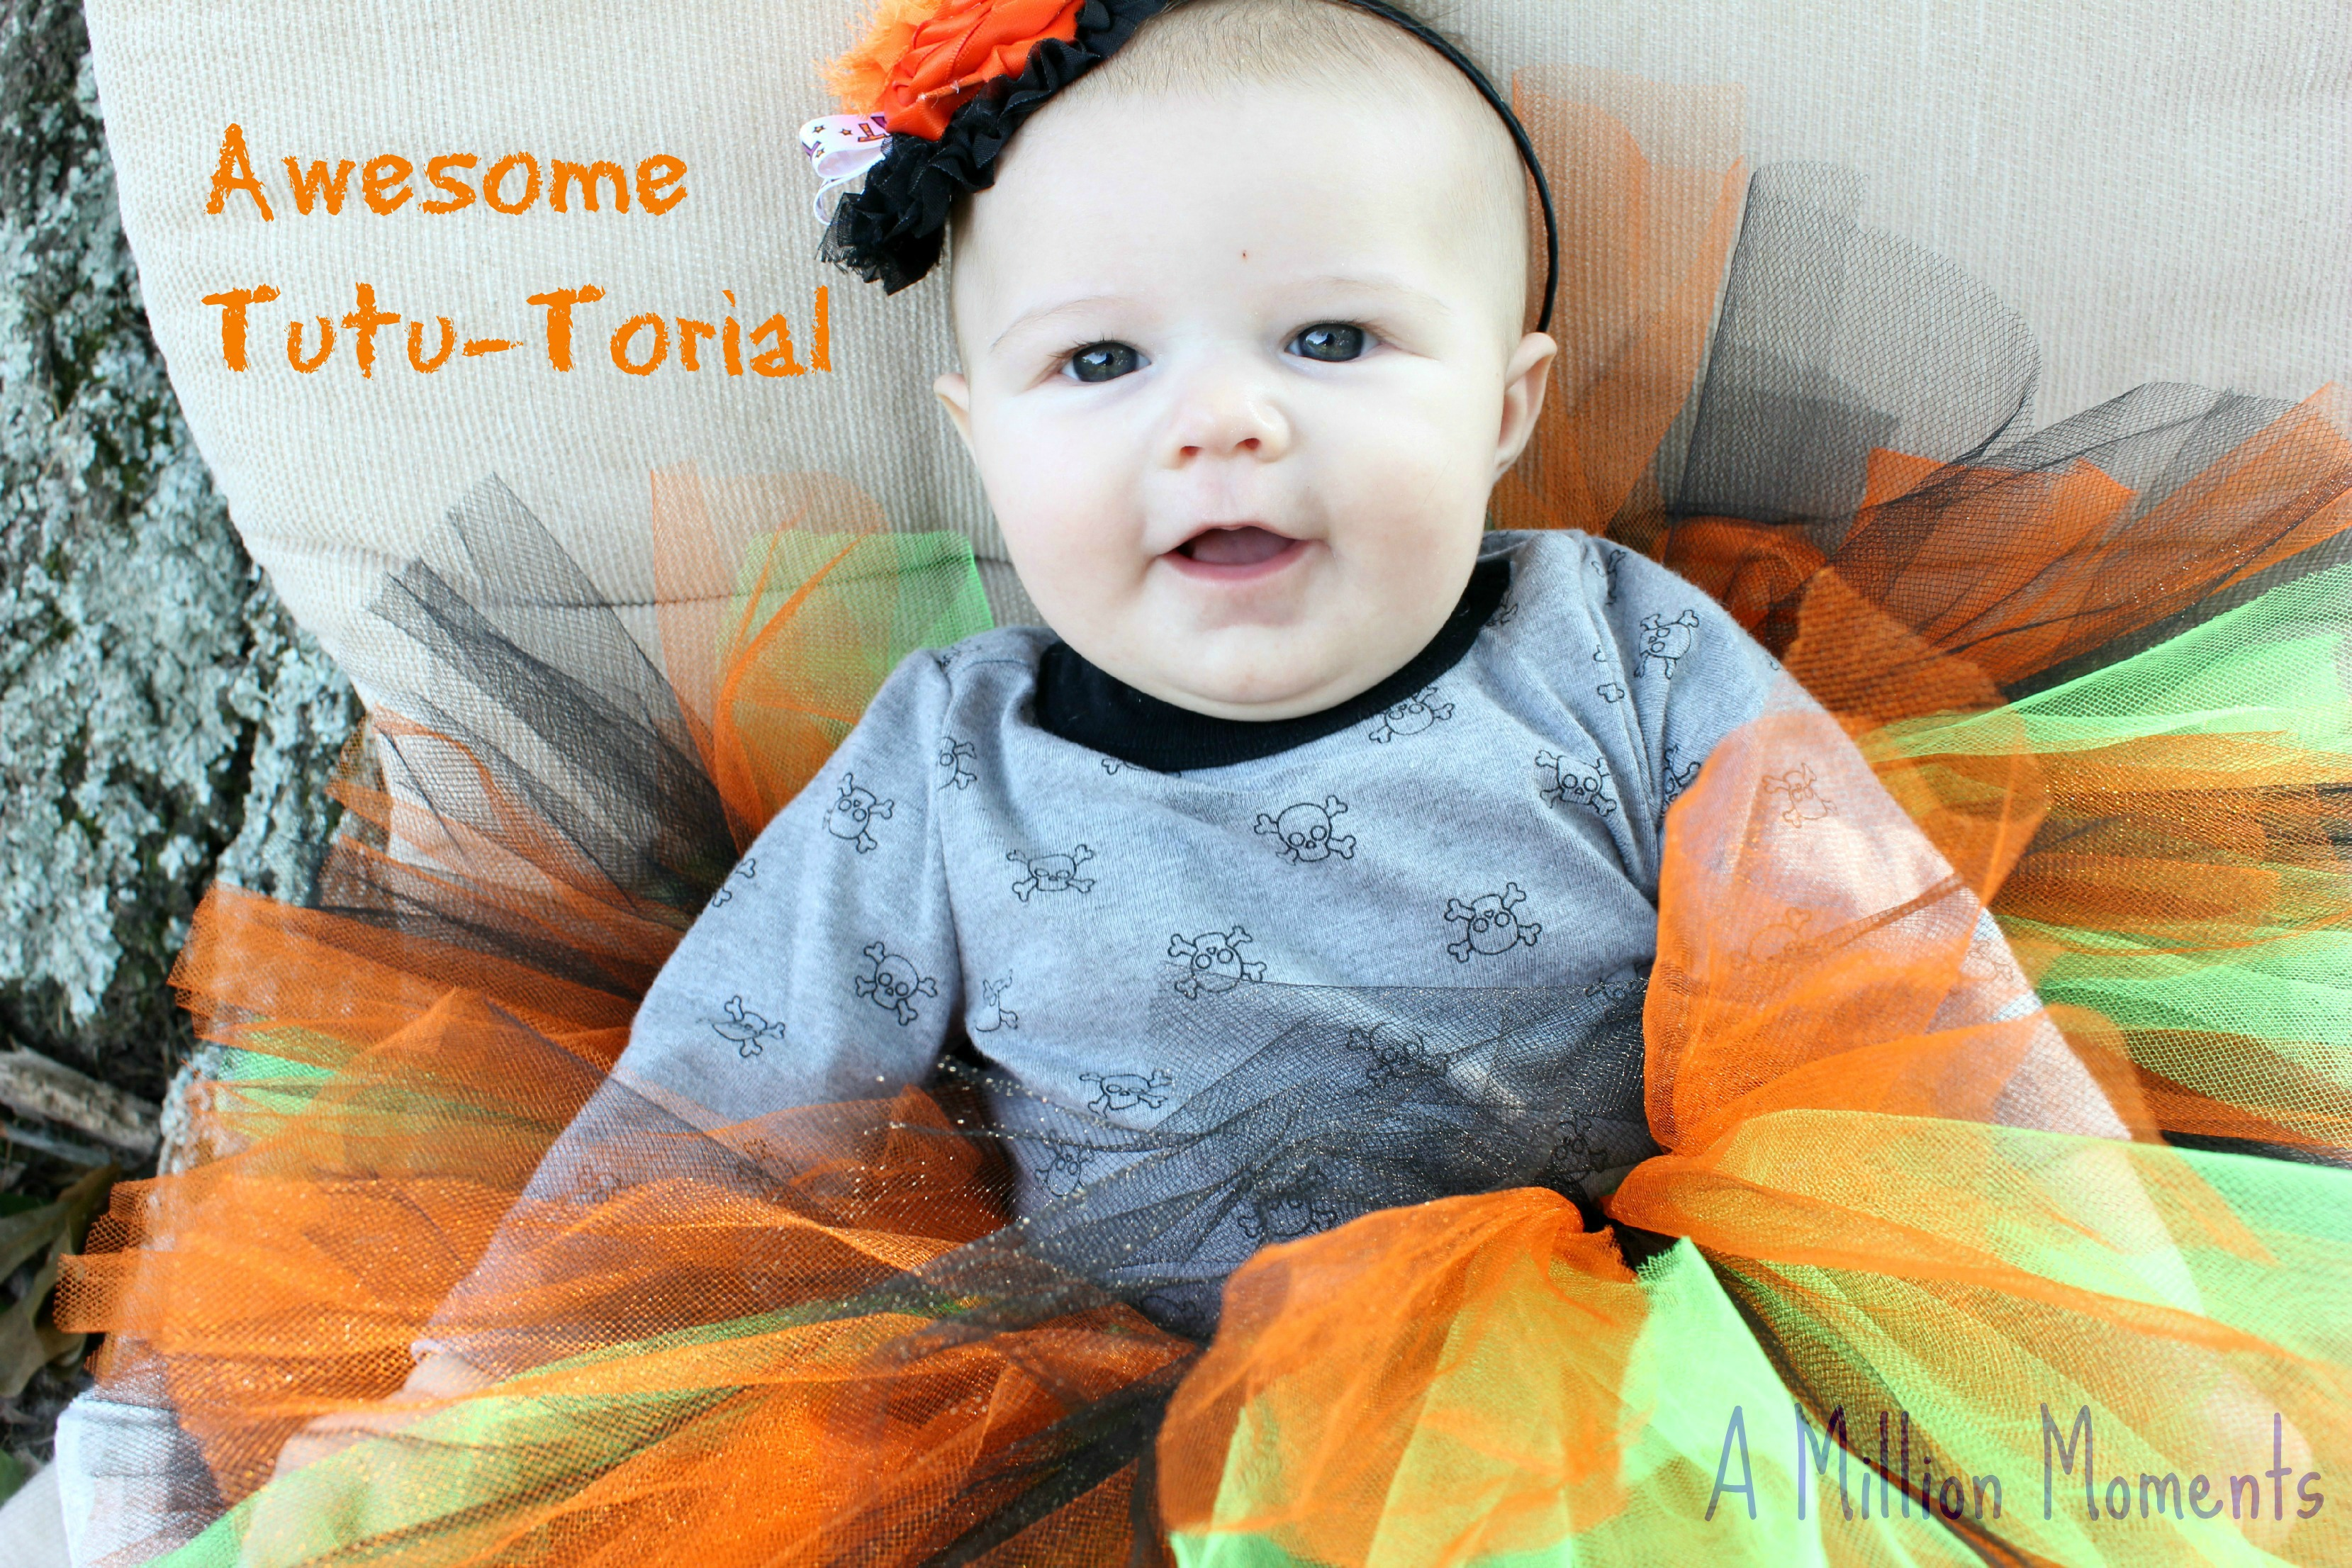 How To Make A Tutu (No Sew Tutorial)